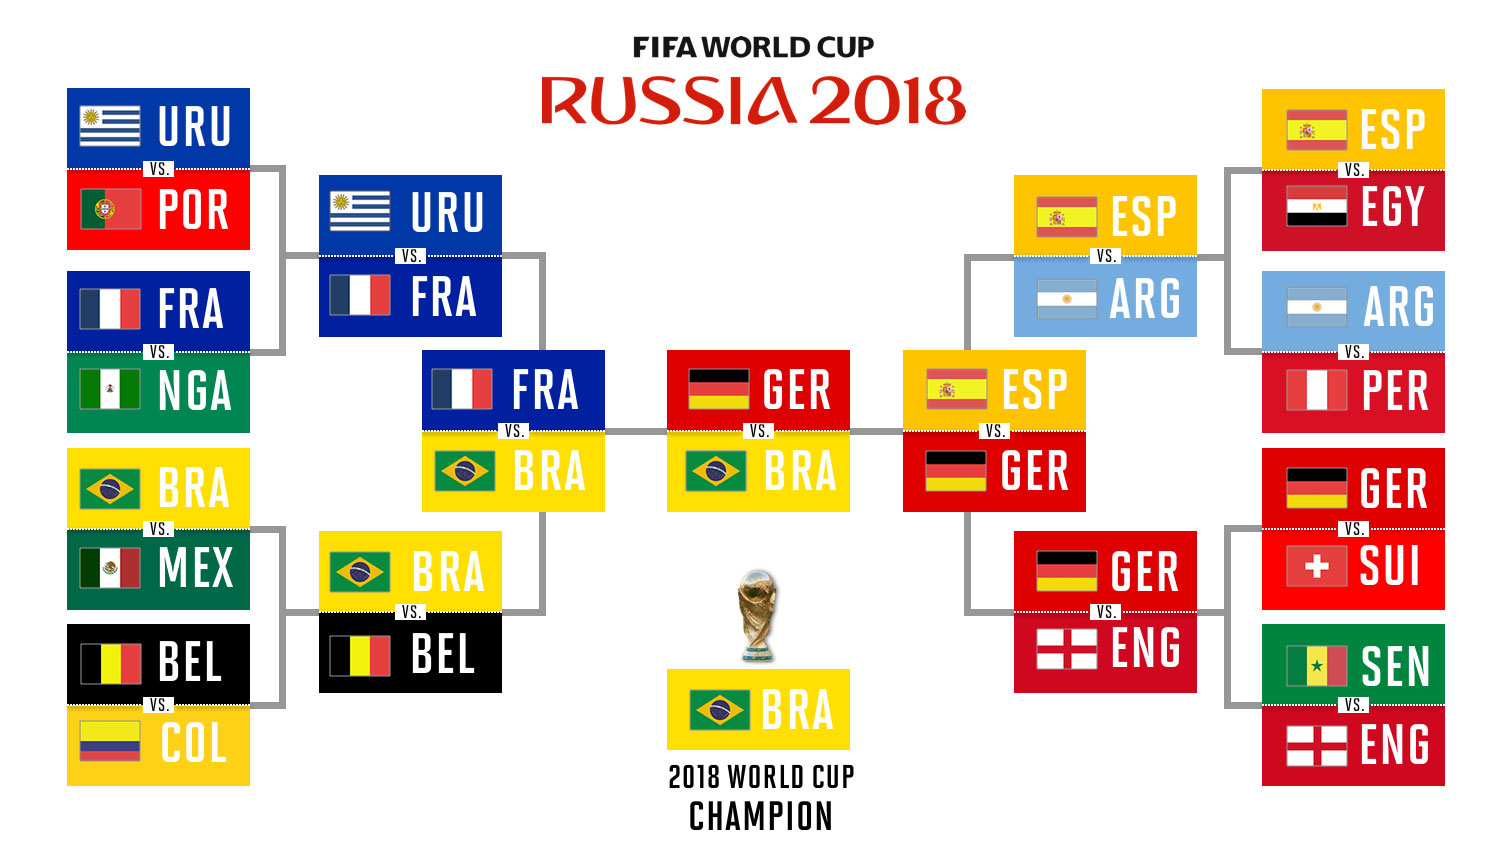 picture relating to Women's World Cup Bracket Printable called Global Cup 2018 predictions: Selections, knockout bracket, champion